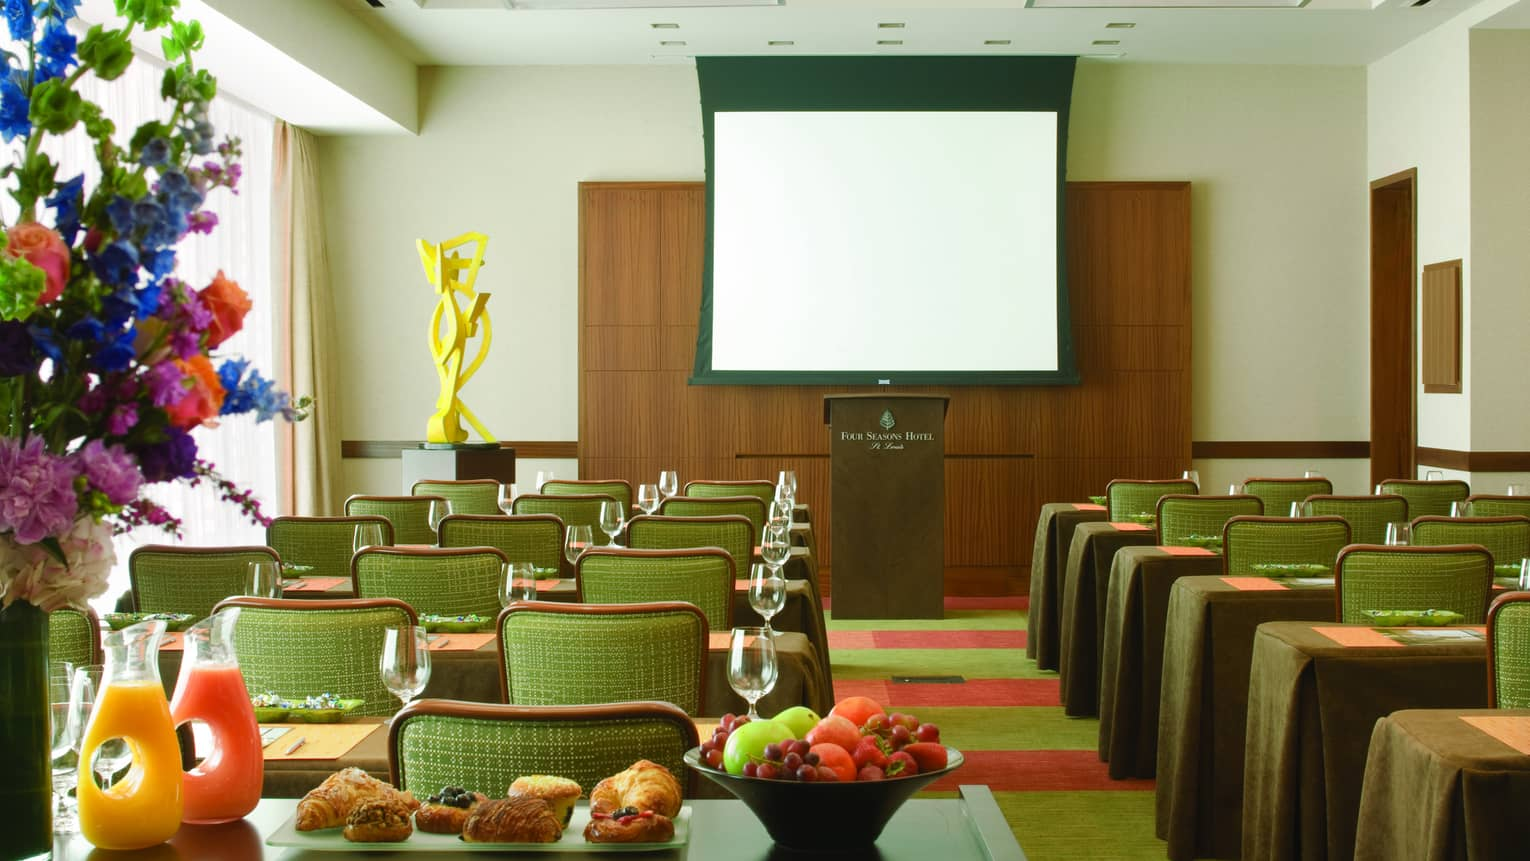 Gateway Meeting Room, rows of small meeting tables face podium, breakfast station